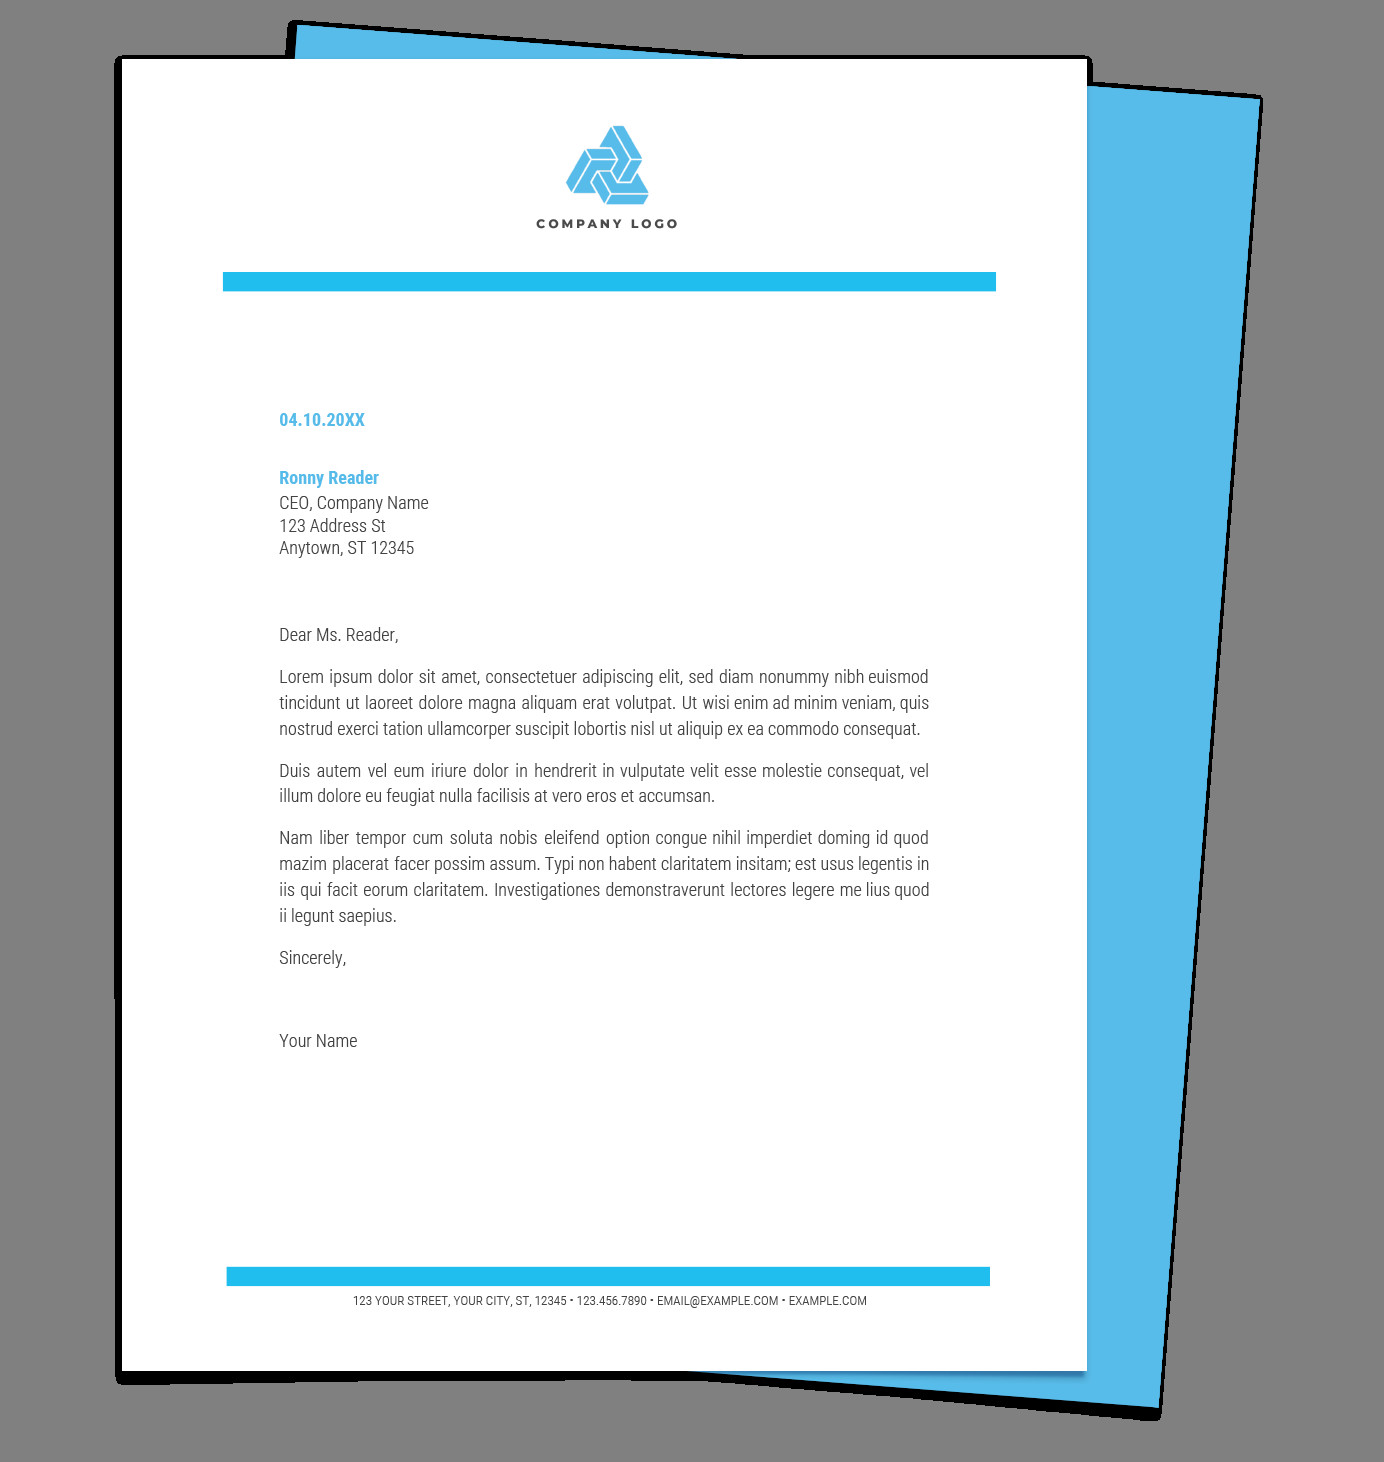 Free Printable Letterhead Templates Free Letterhead Templates for Google Docs and Word